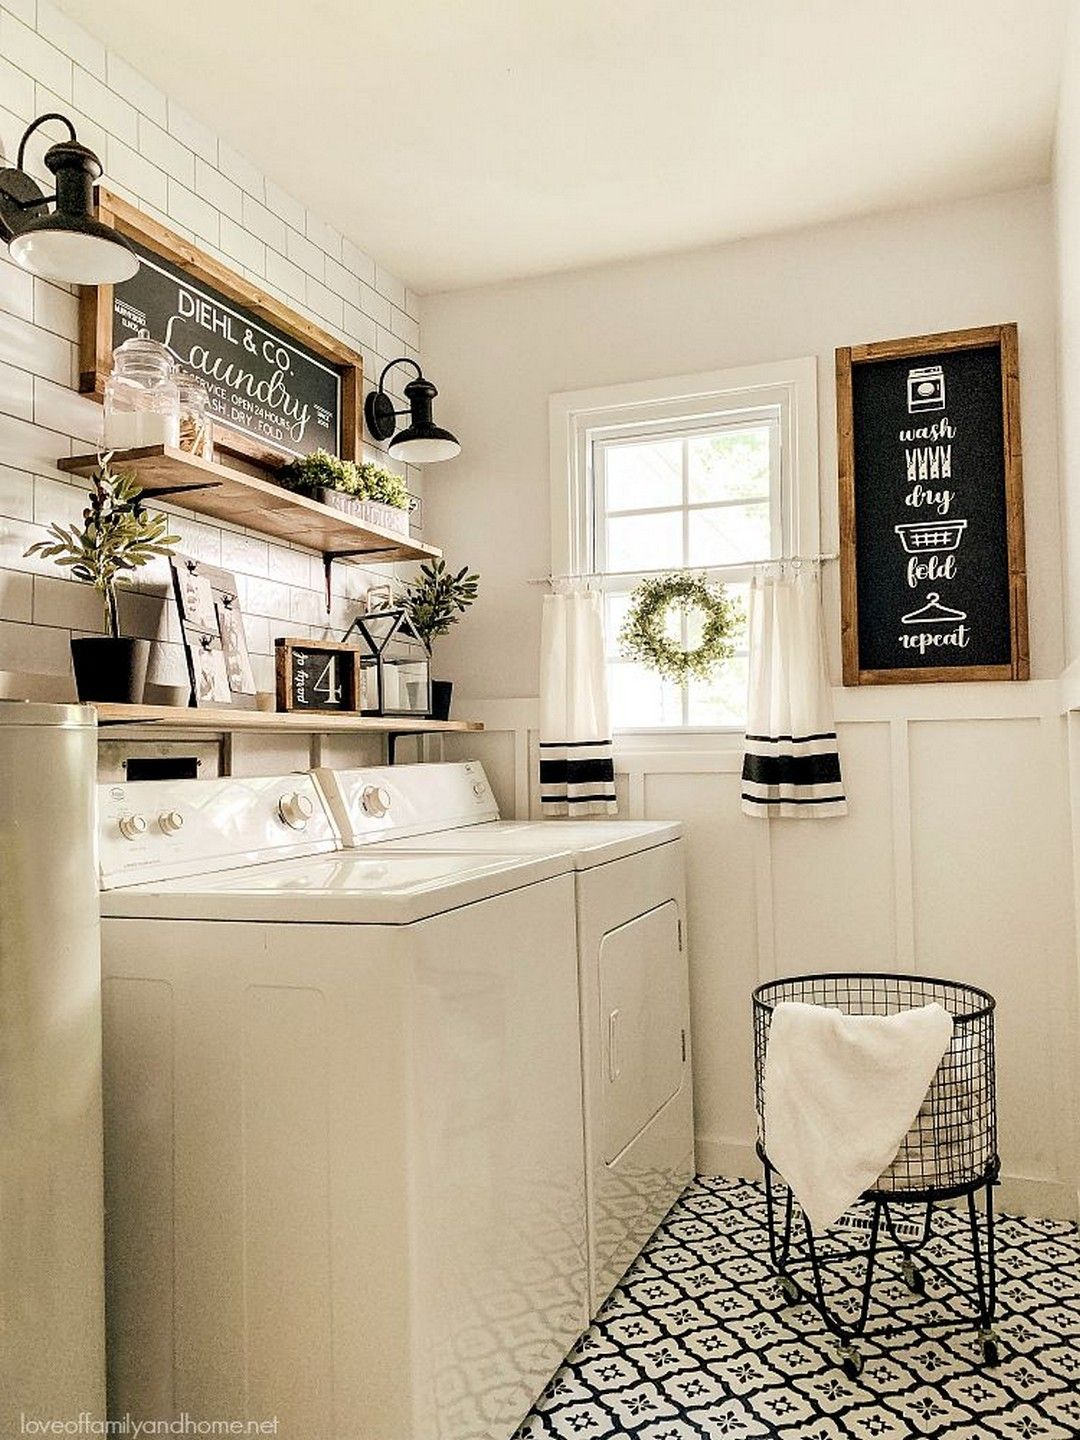 22 Farmhouse Laundry Room Design